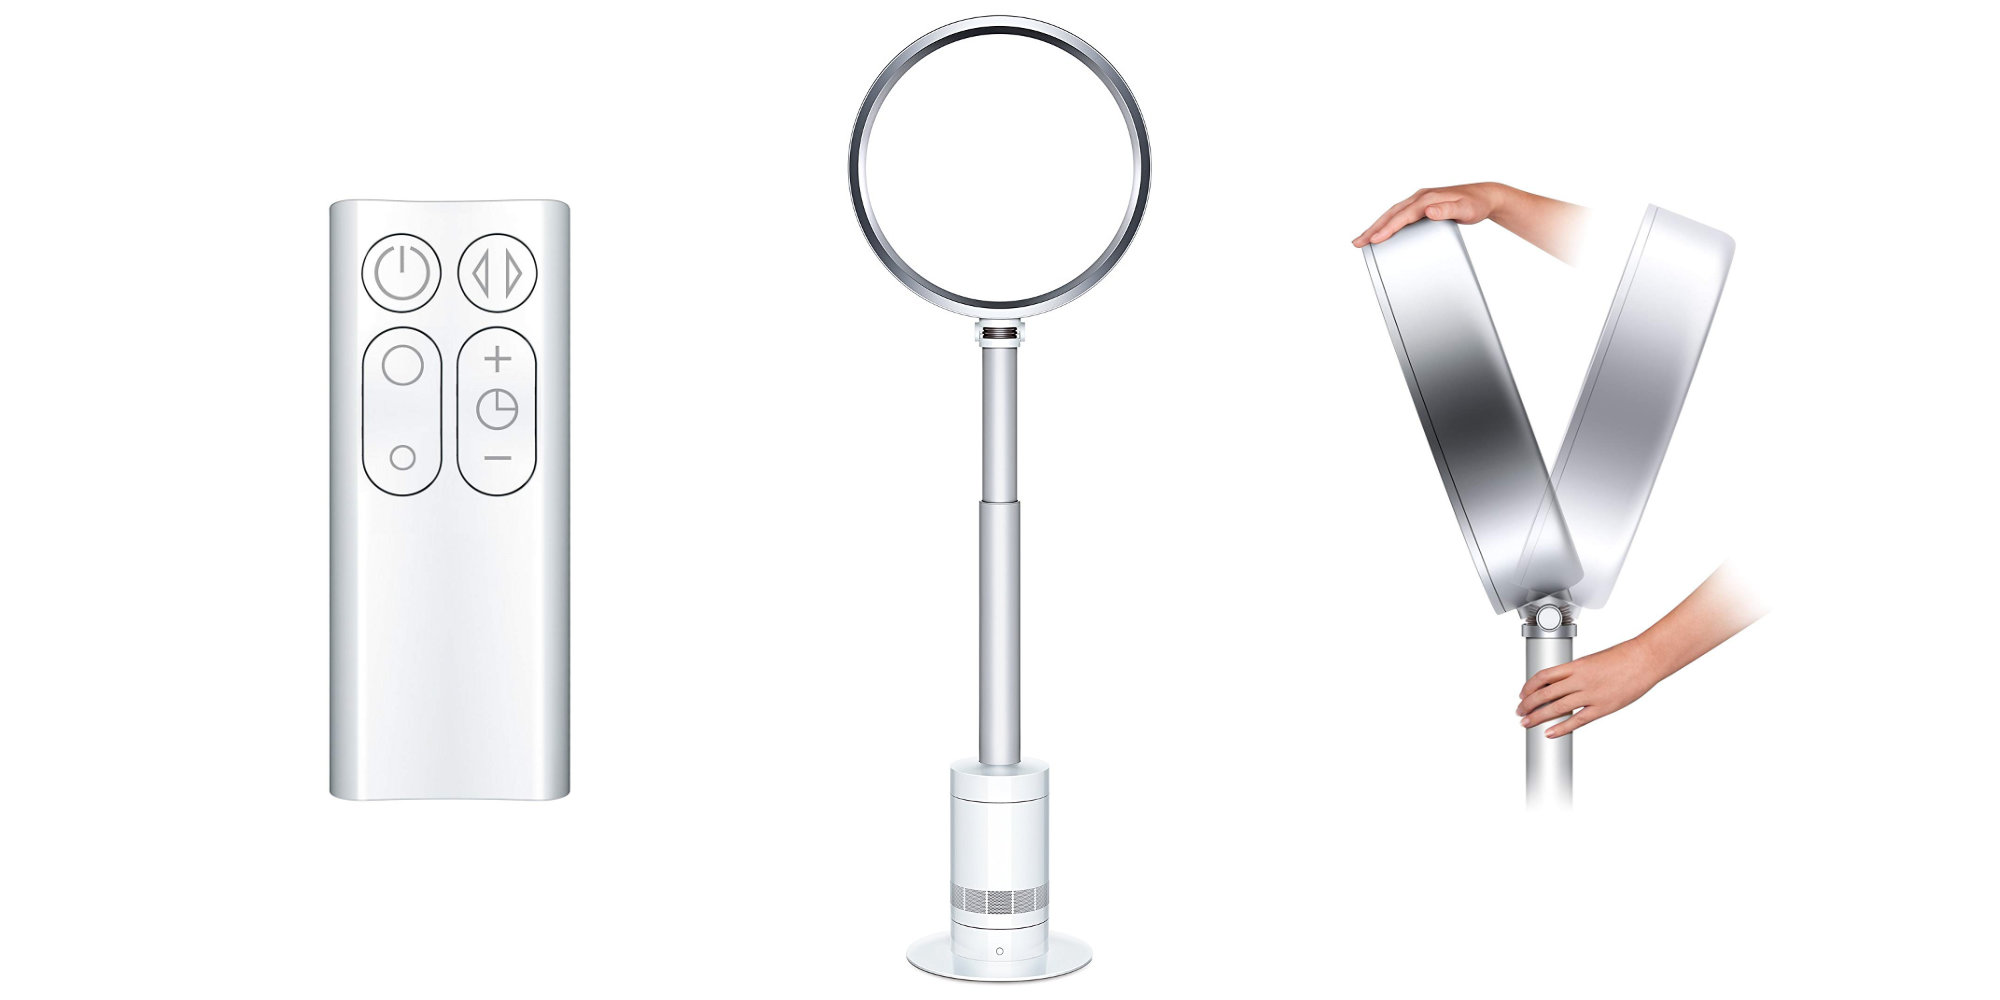 The blade-less Dyson Pedestal Fan nearly reaches its all-time low: $152 (Refurb, Orig. $450)